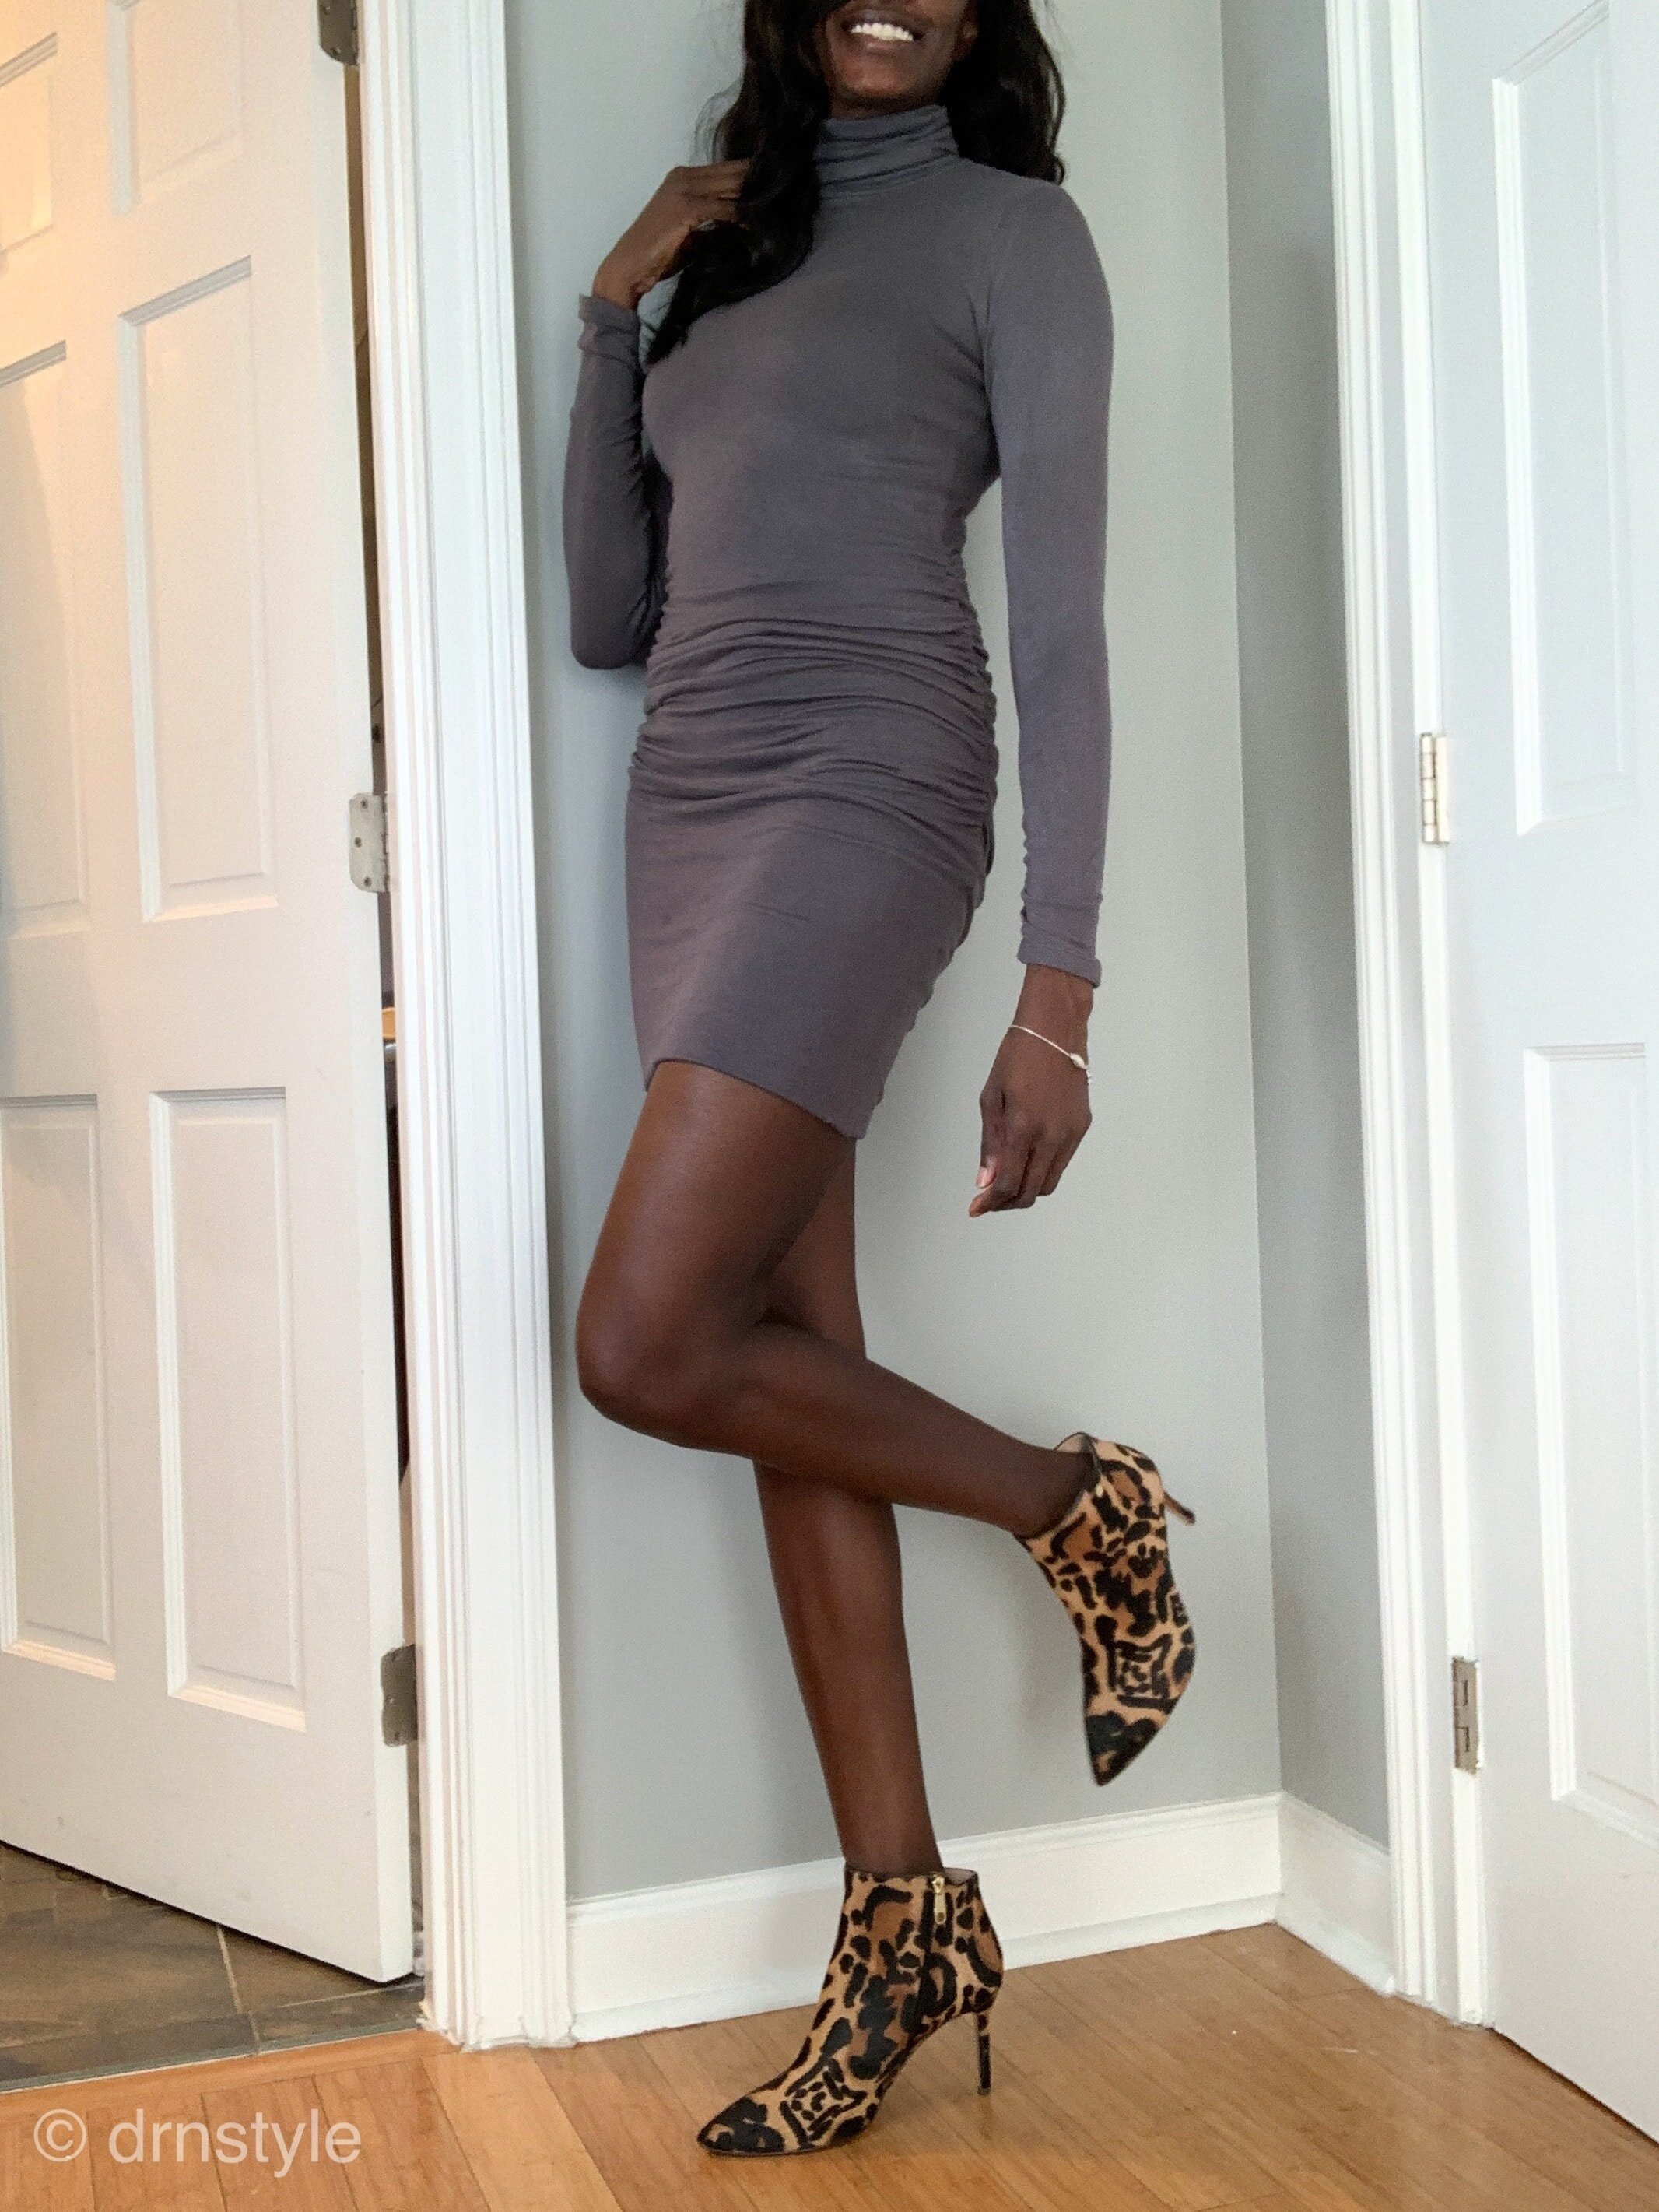 Leopard booties with a simple knee-length grey sweater dress.